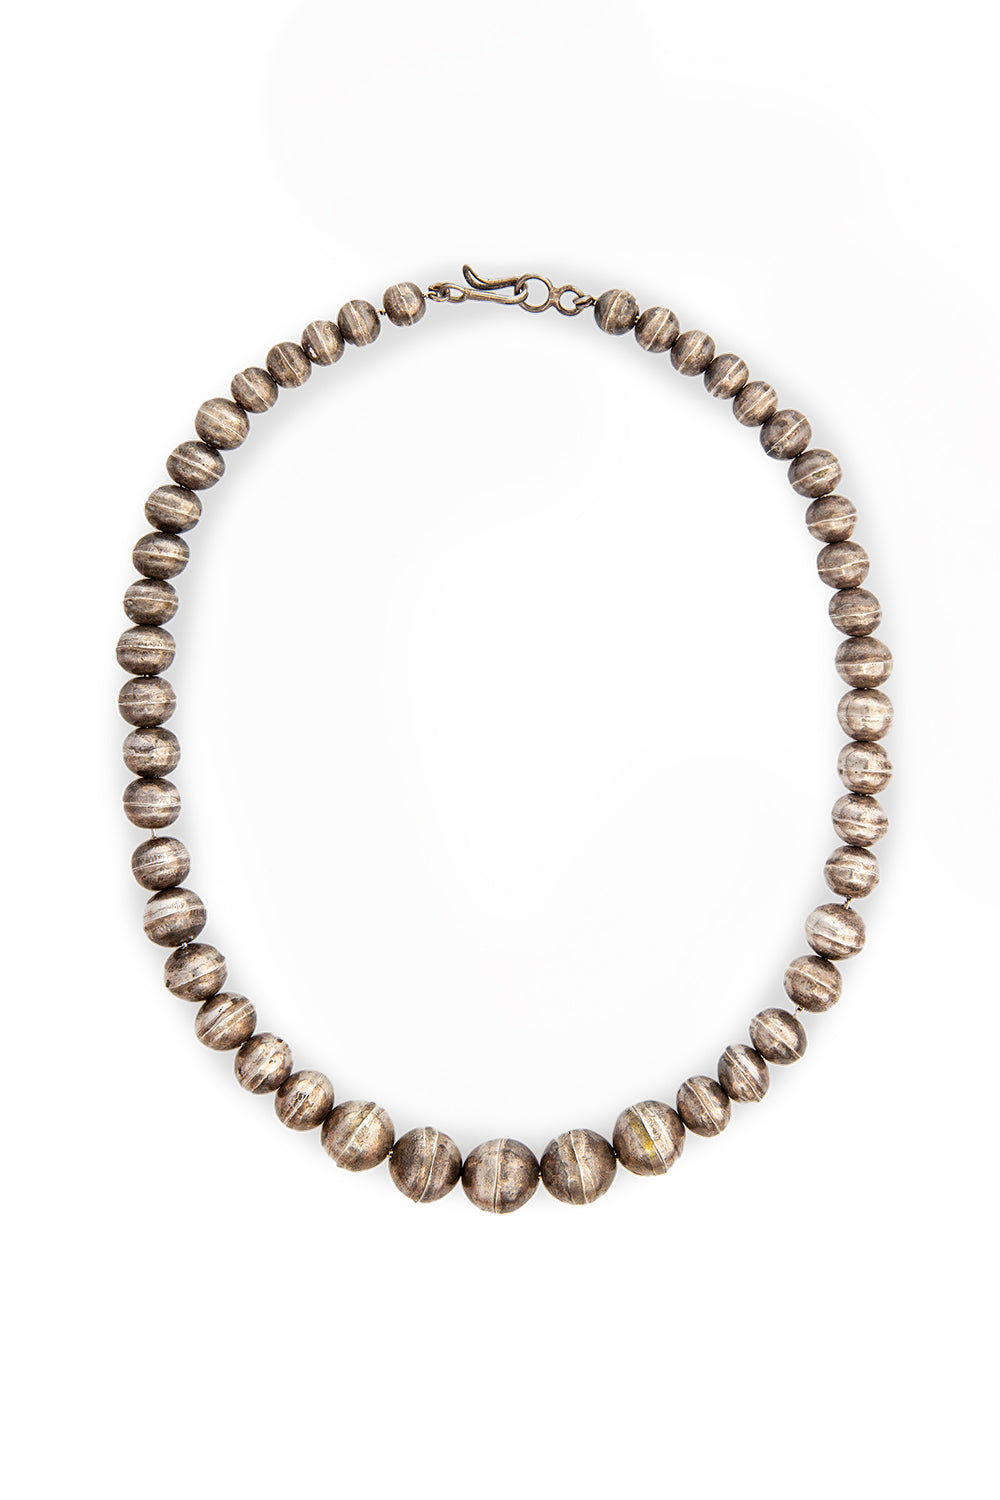 Necklace, Bead, Sterling Silver, Desert Pearls, Vintage, 876